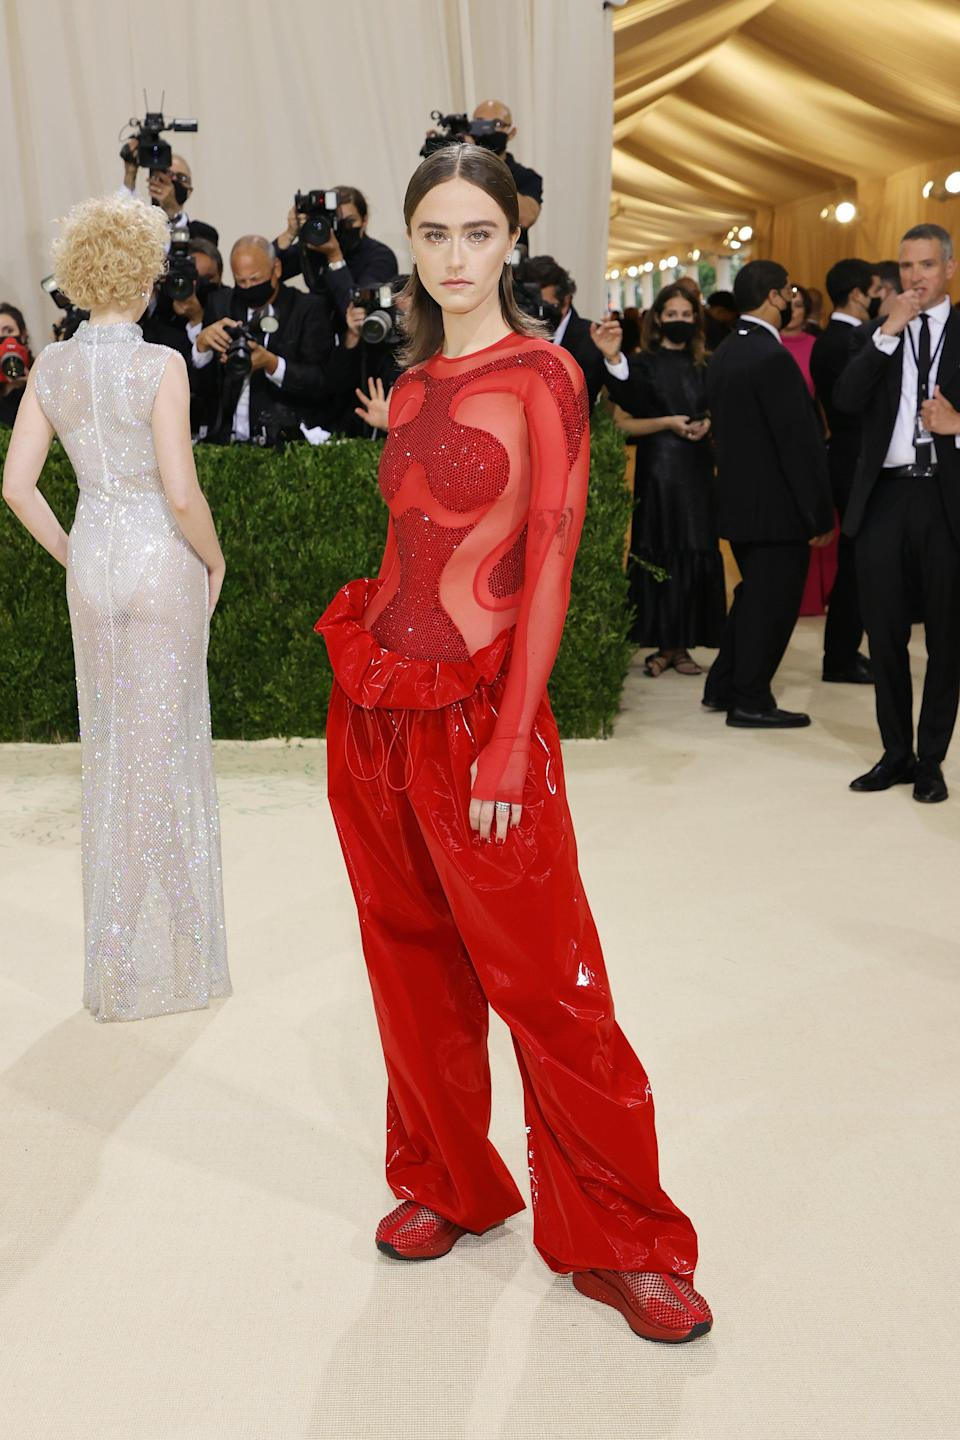 <h2>Ella Emhoff wearing adidas by Stella McCartney</h2><br>The First Daughter of Bushwick has arrived at the Met Gala — and she's wearing USA-red by Stella McCartney!